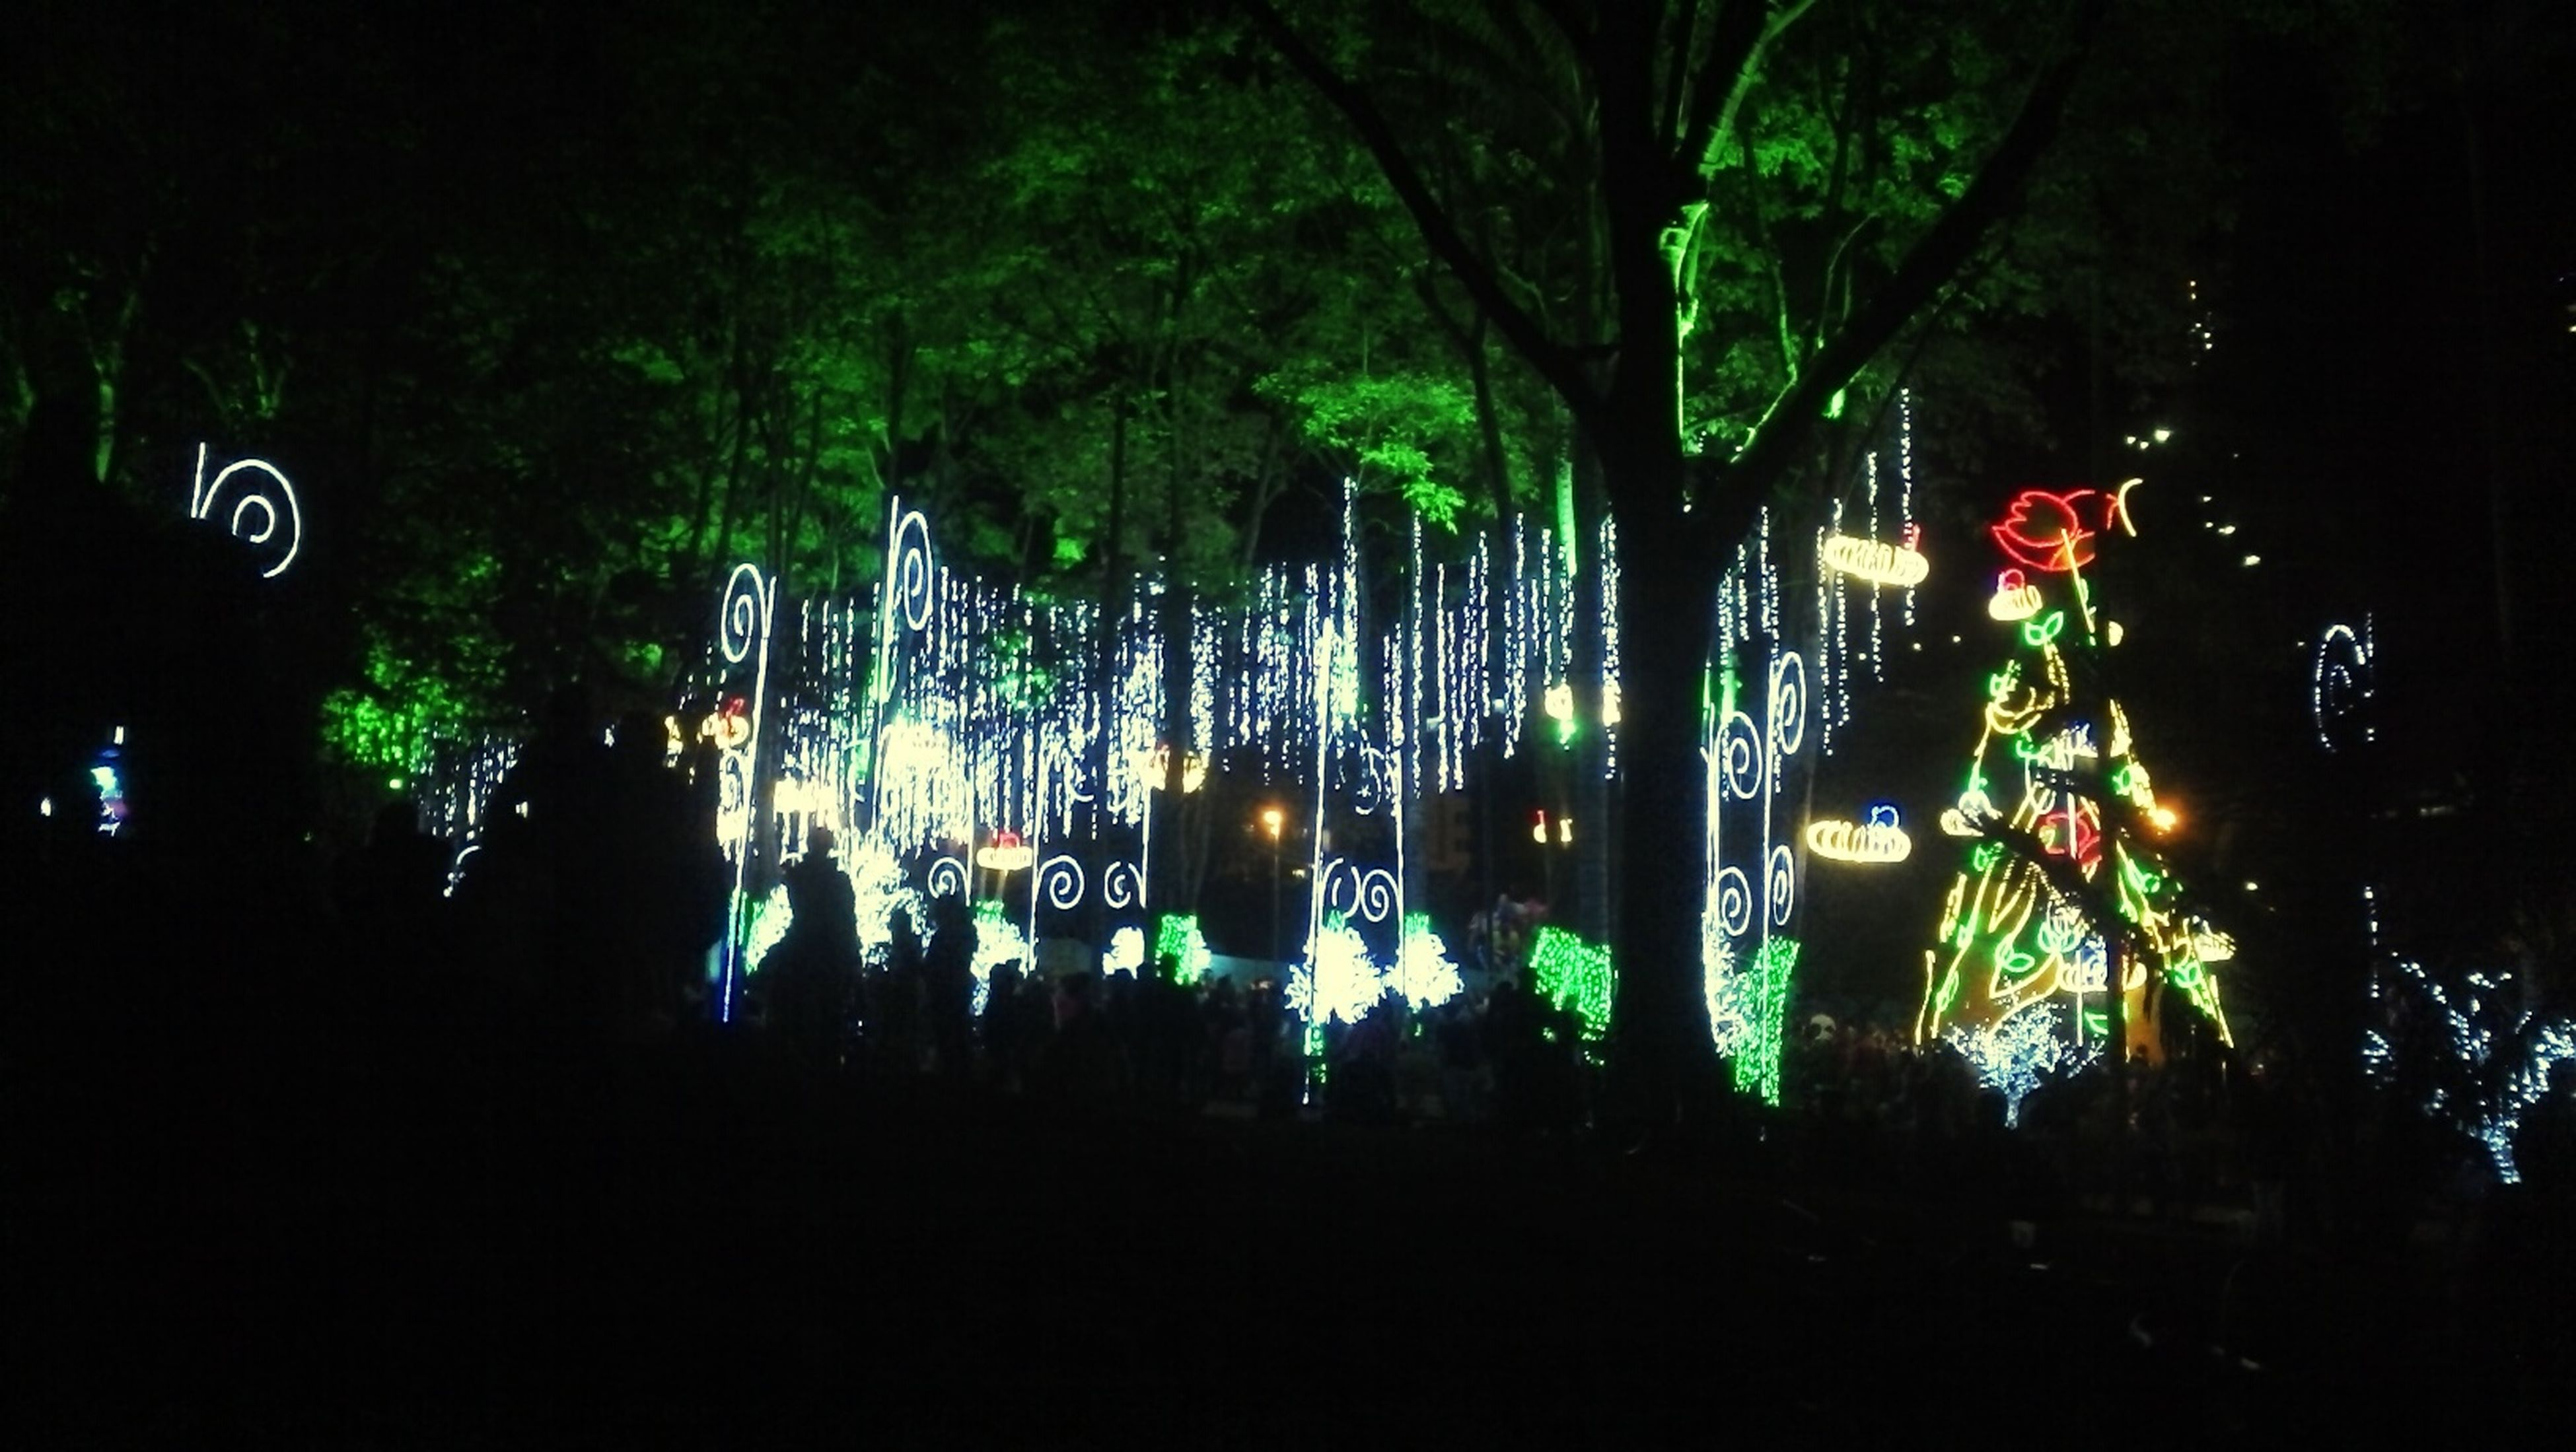 tree, large group of people, night, illuminated, growth, nature, outdoors, park - man made space, tranquility, lighting equipment, silhouette, celebration, beauty in nature, tree trunk, street light, in a row, hanging, men